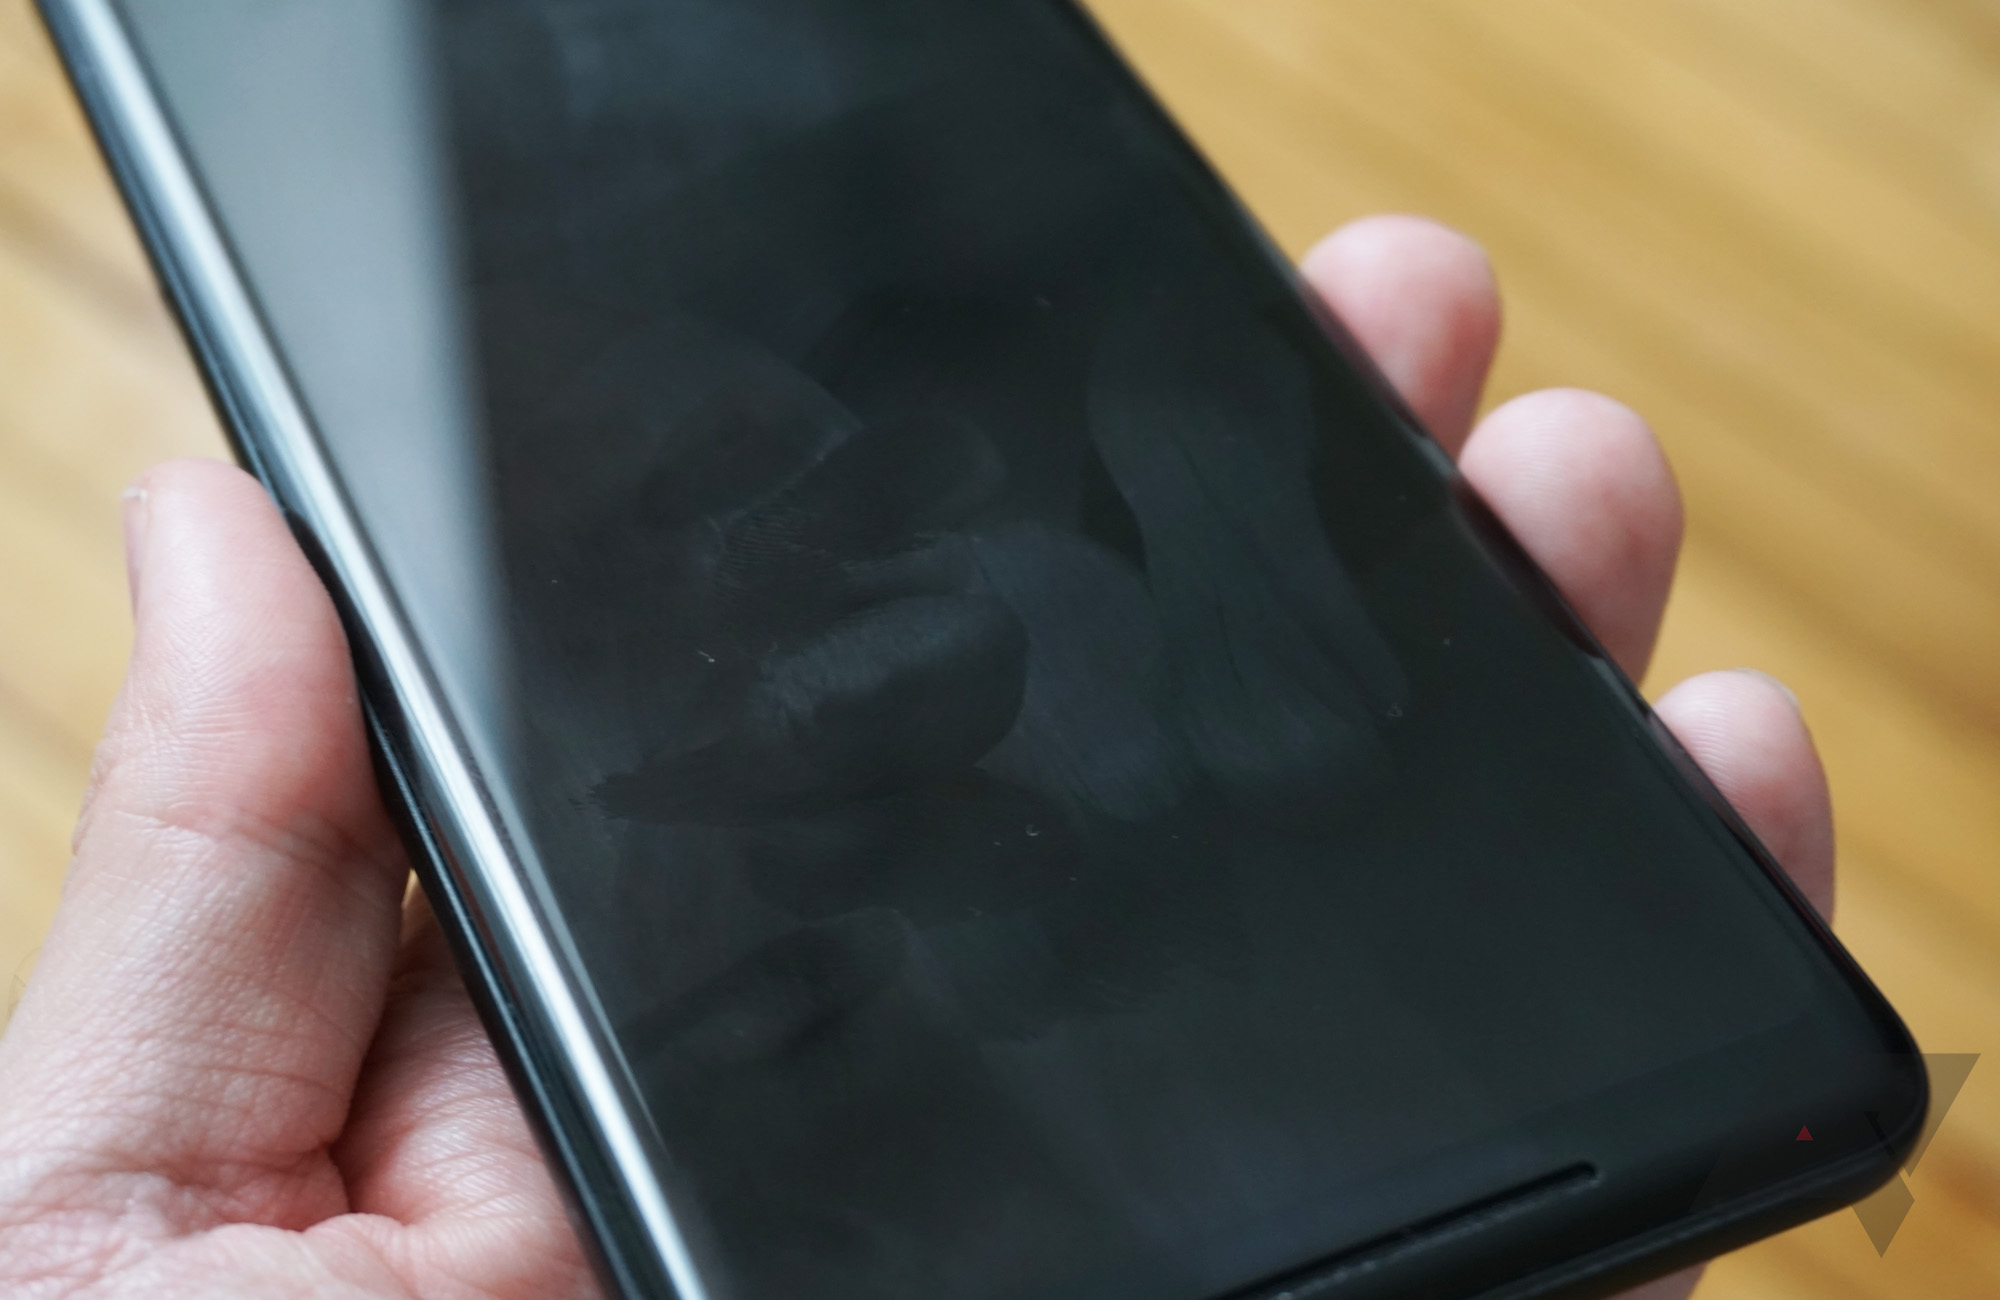 The Pixel 2 XL's oleophobic coating is so bad I almost don't want to